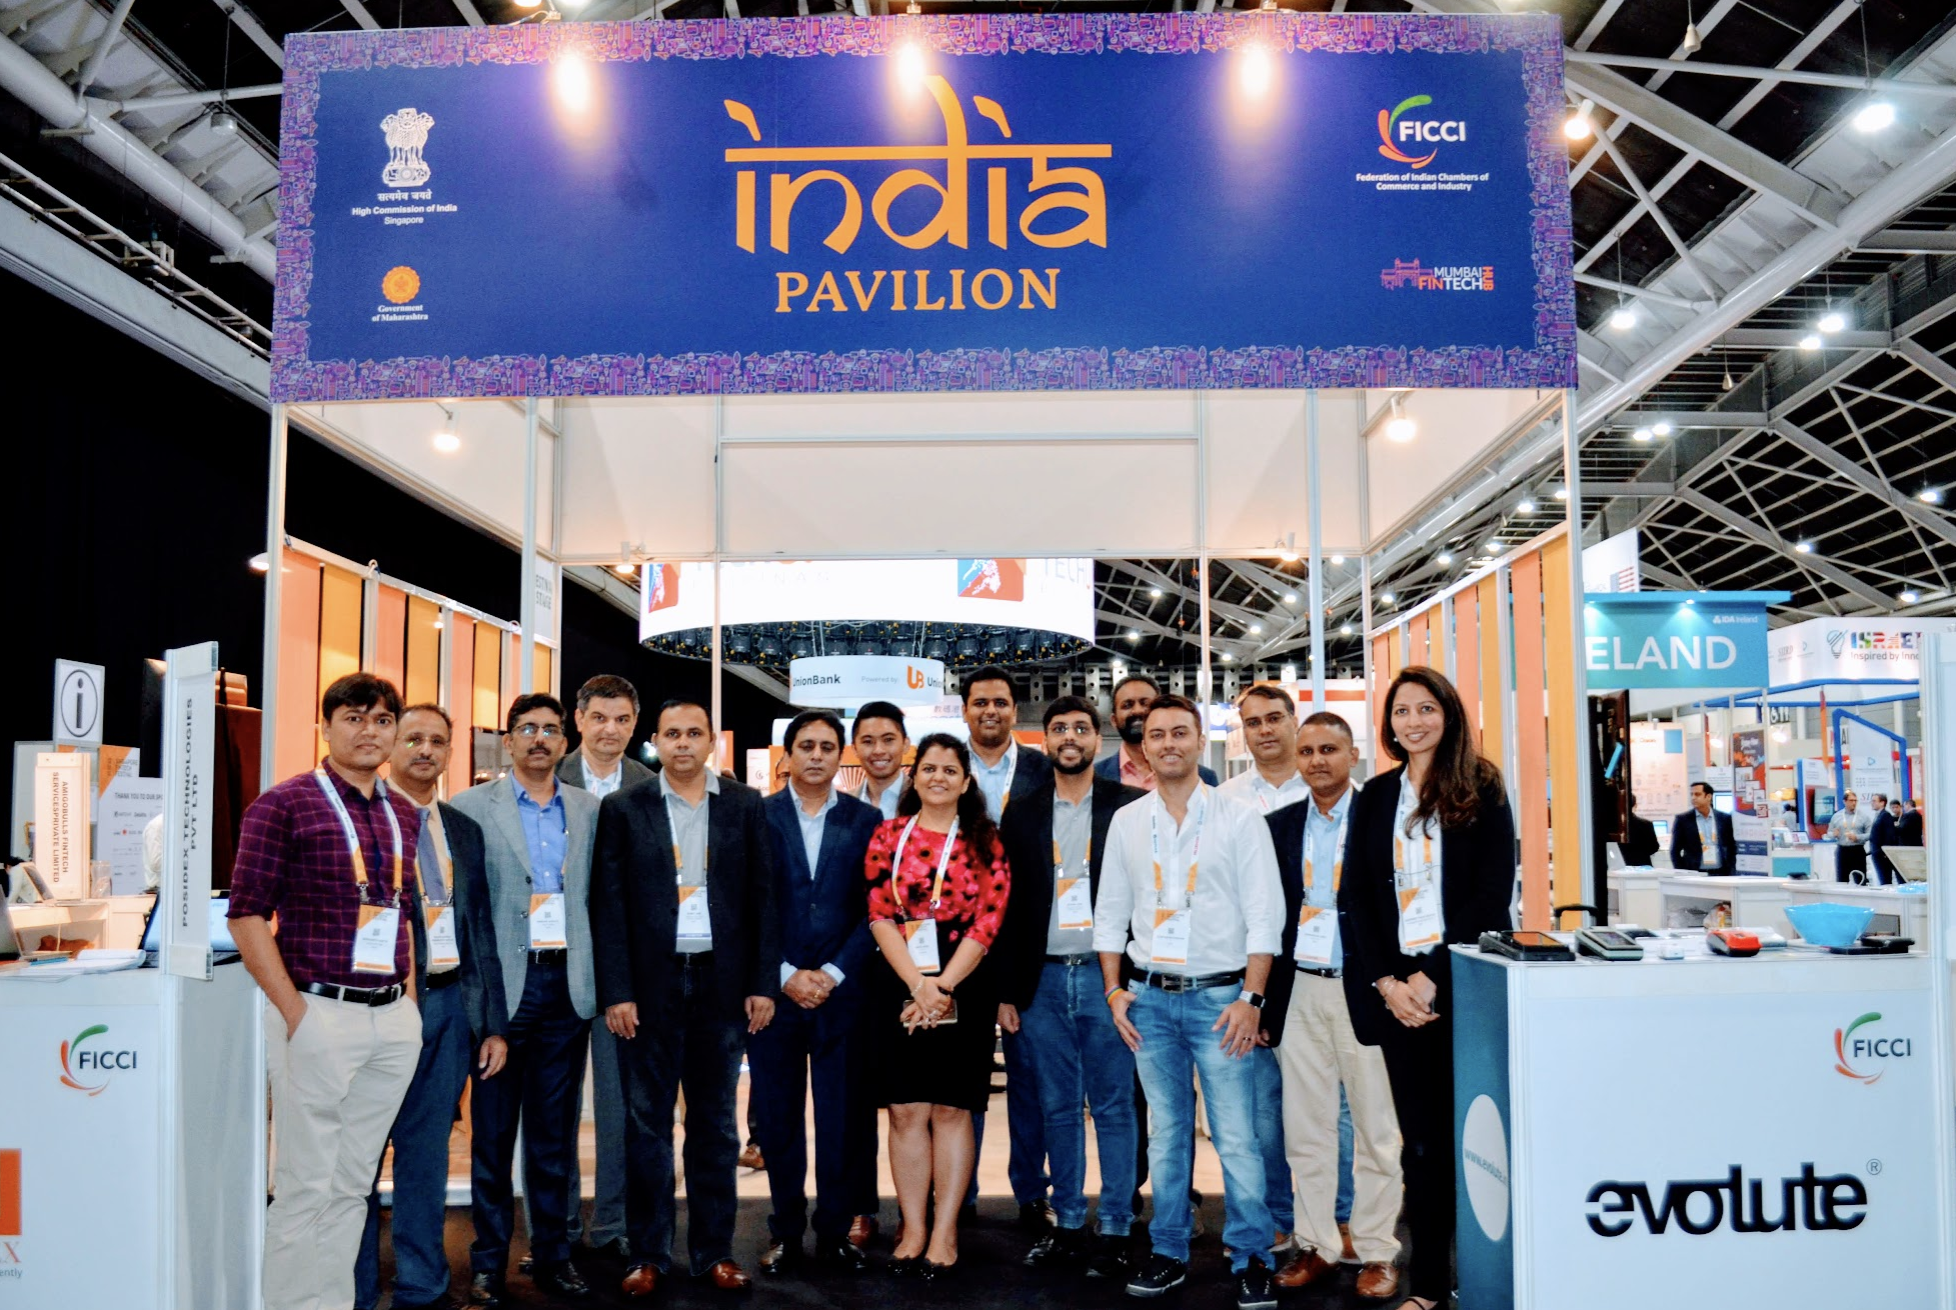 Displaying abundant enthusiasm for the Fintech sector and interest in the India-Singapore business corridor is the largest contingent from India with 400 exhibitors. India Pavilion comprising of 18 startups including Valuefy, Phocket, Happy, Posidex, Lend foundry at the India pavilion with the local Director of FICCI Navita Myer Photo: Connected to India